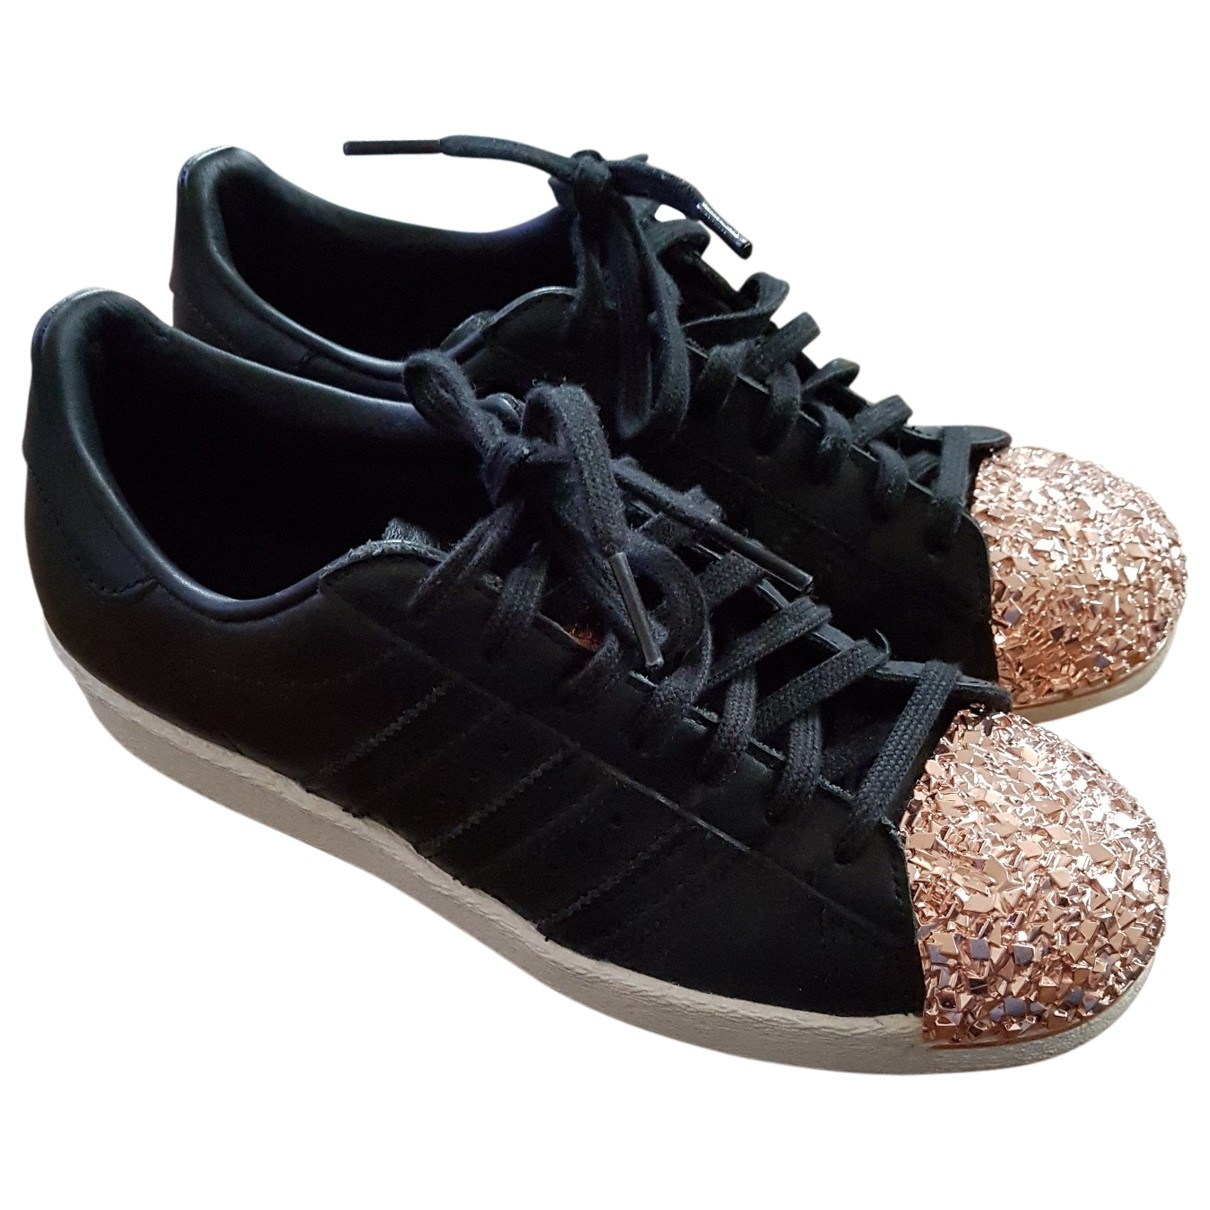 Adidas Superstar Black Leather Trainers for Women 37.5 EU